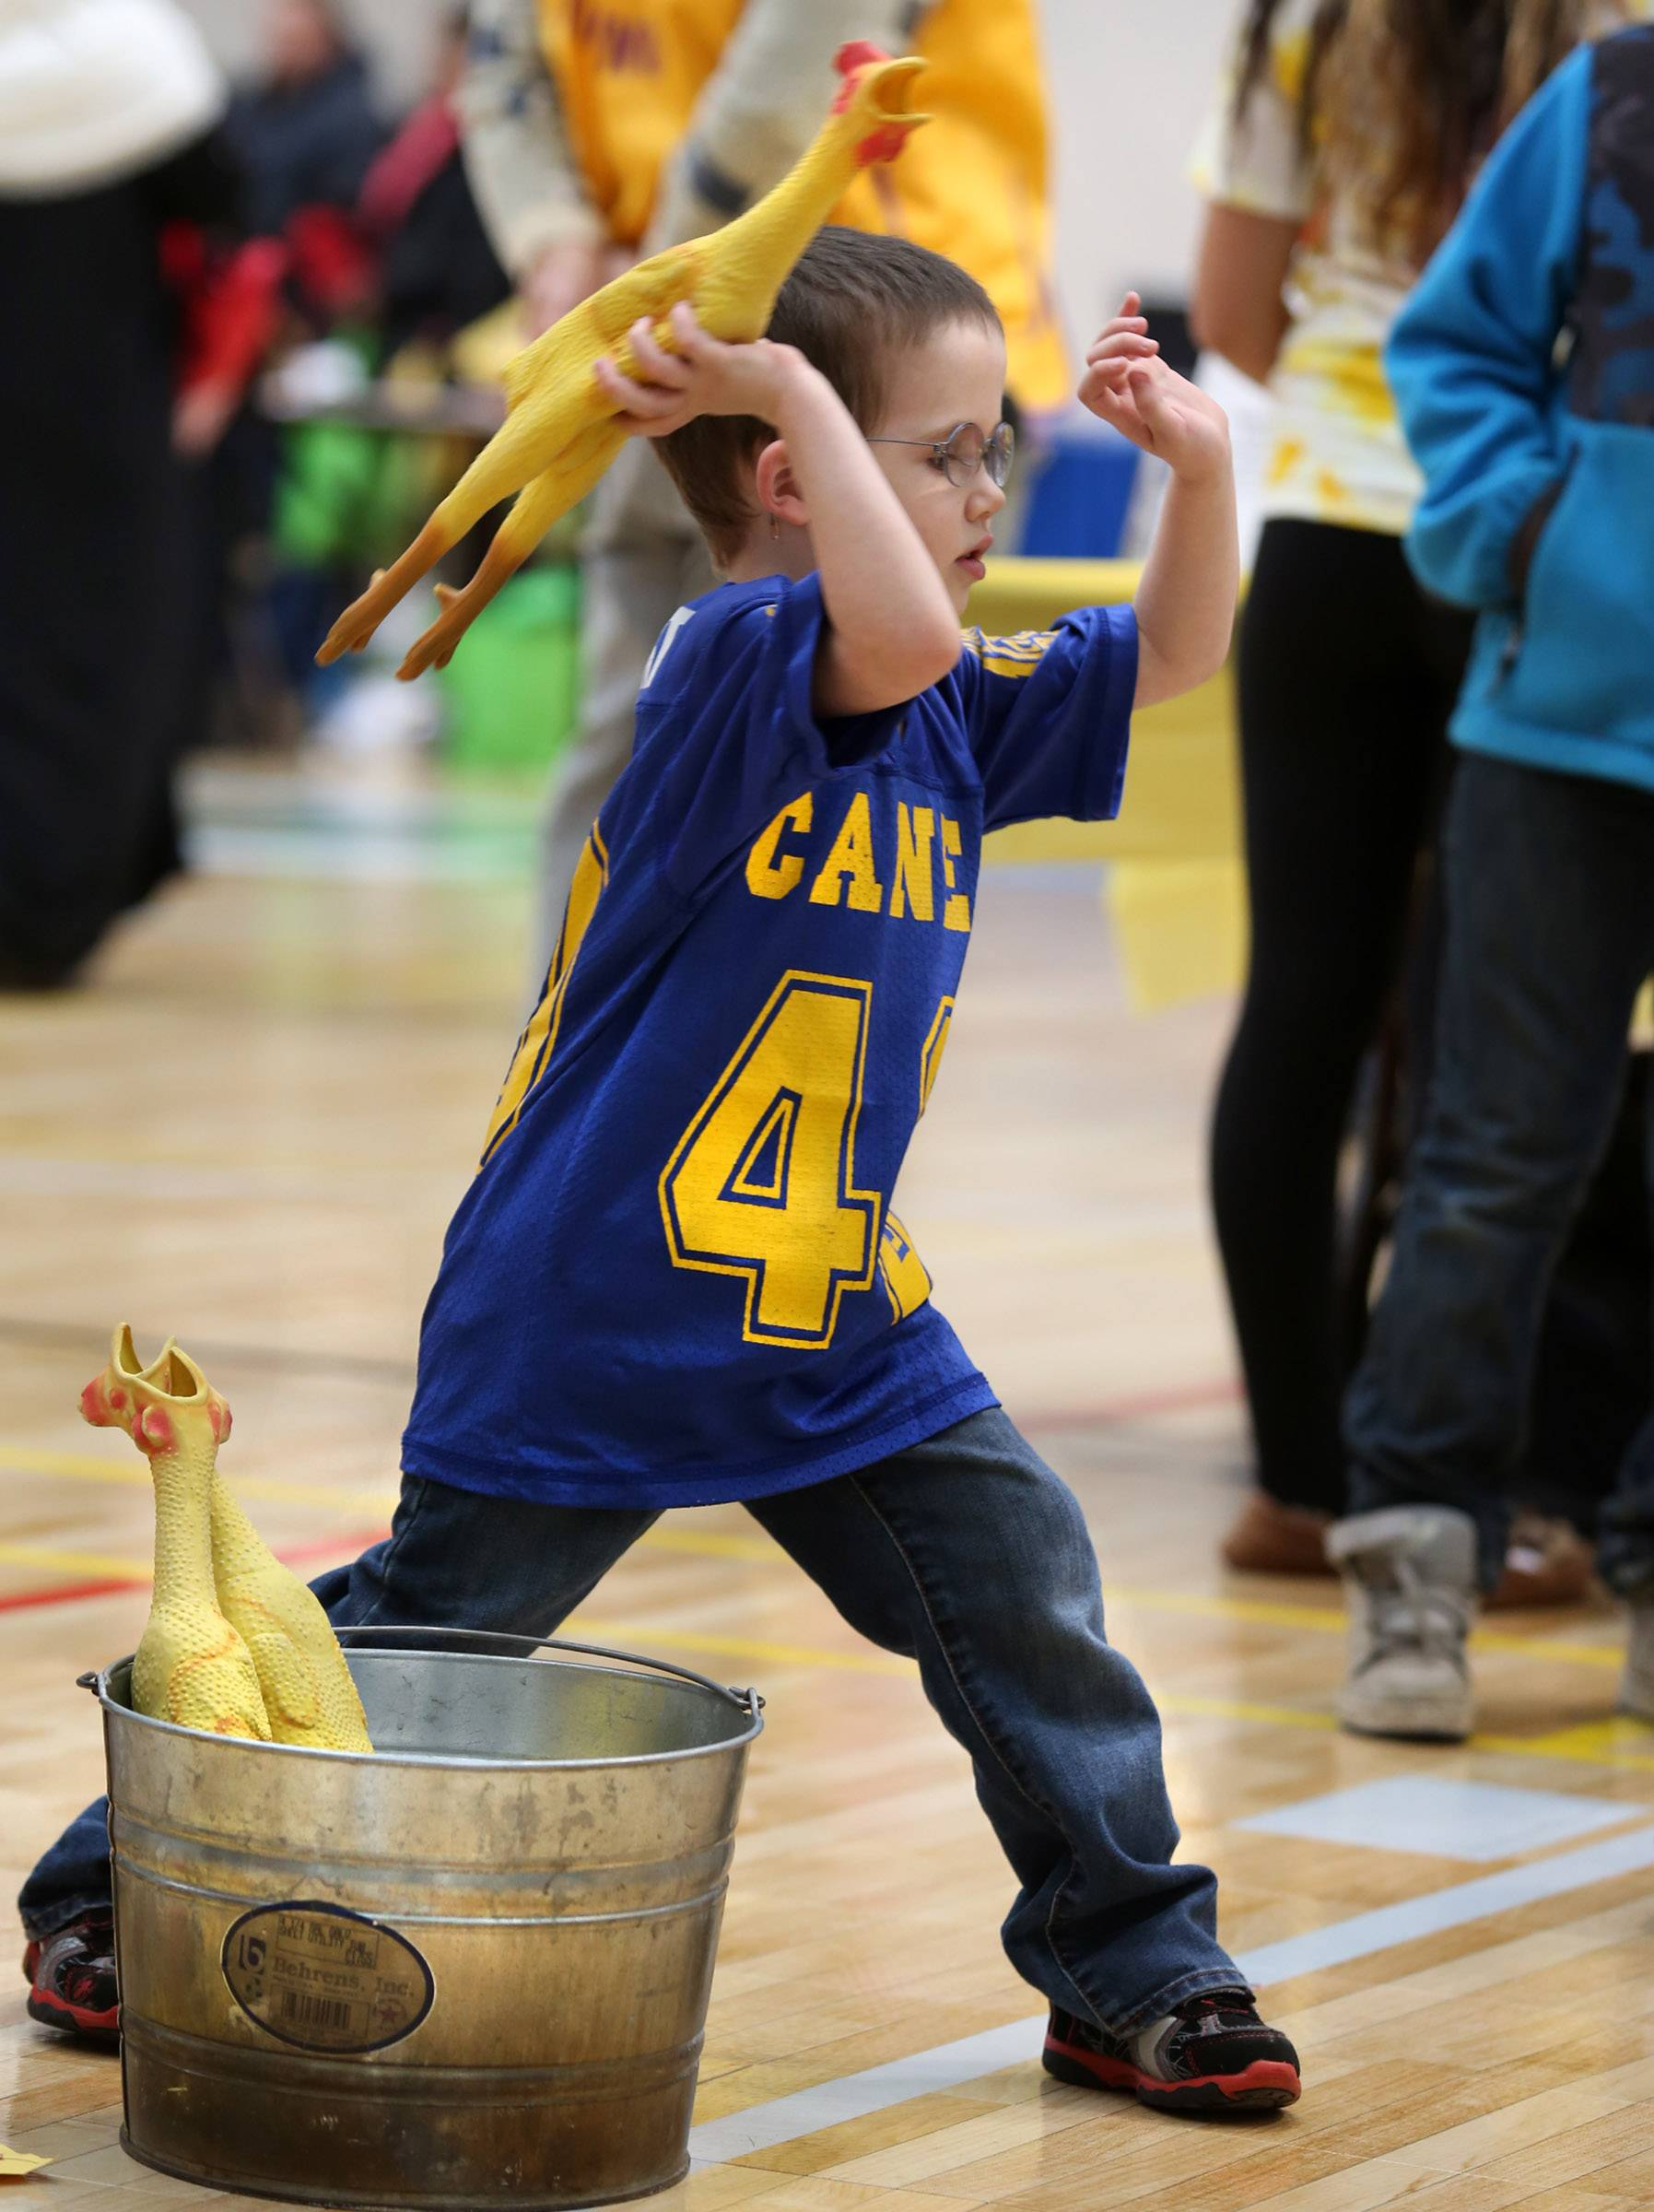 Matthew Weinert, 4, of Hanover Park, tosses a rubber chicken towards a basketball hoop at Kids at Hope Coalition's Kids Hope Community Resource Fair at Village of Hanover Park's Community Center Gym on Saturday in Hanover Park.